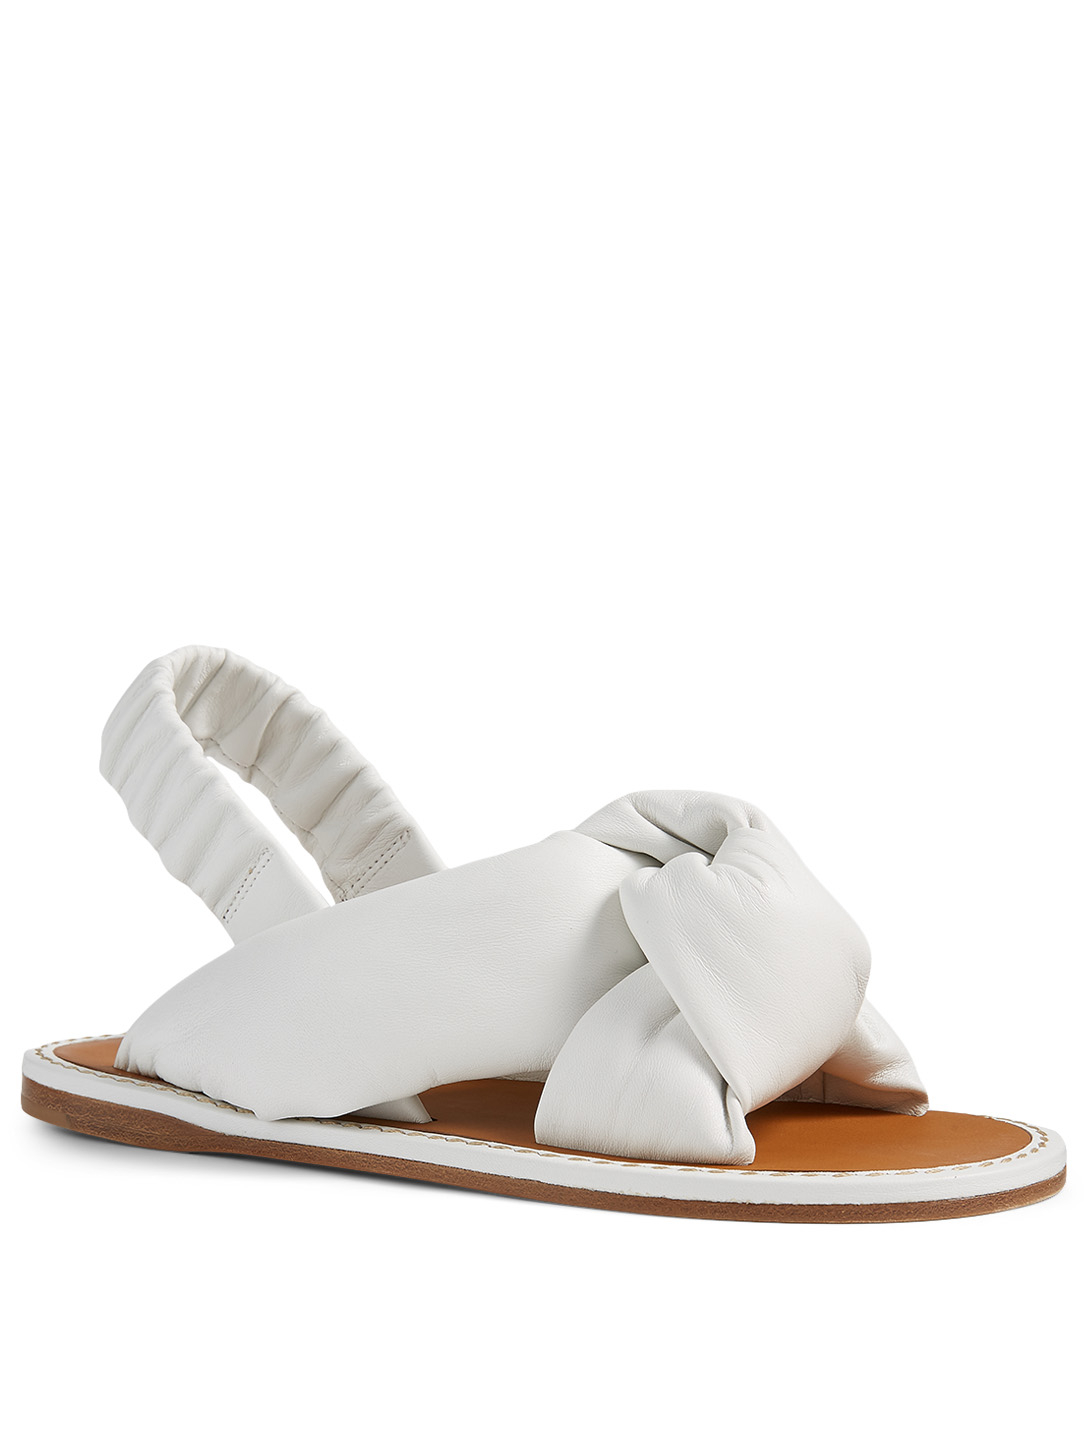 MIU MIU Knotted Leather Slingback Sandals Women's White